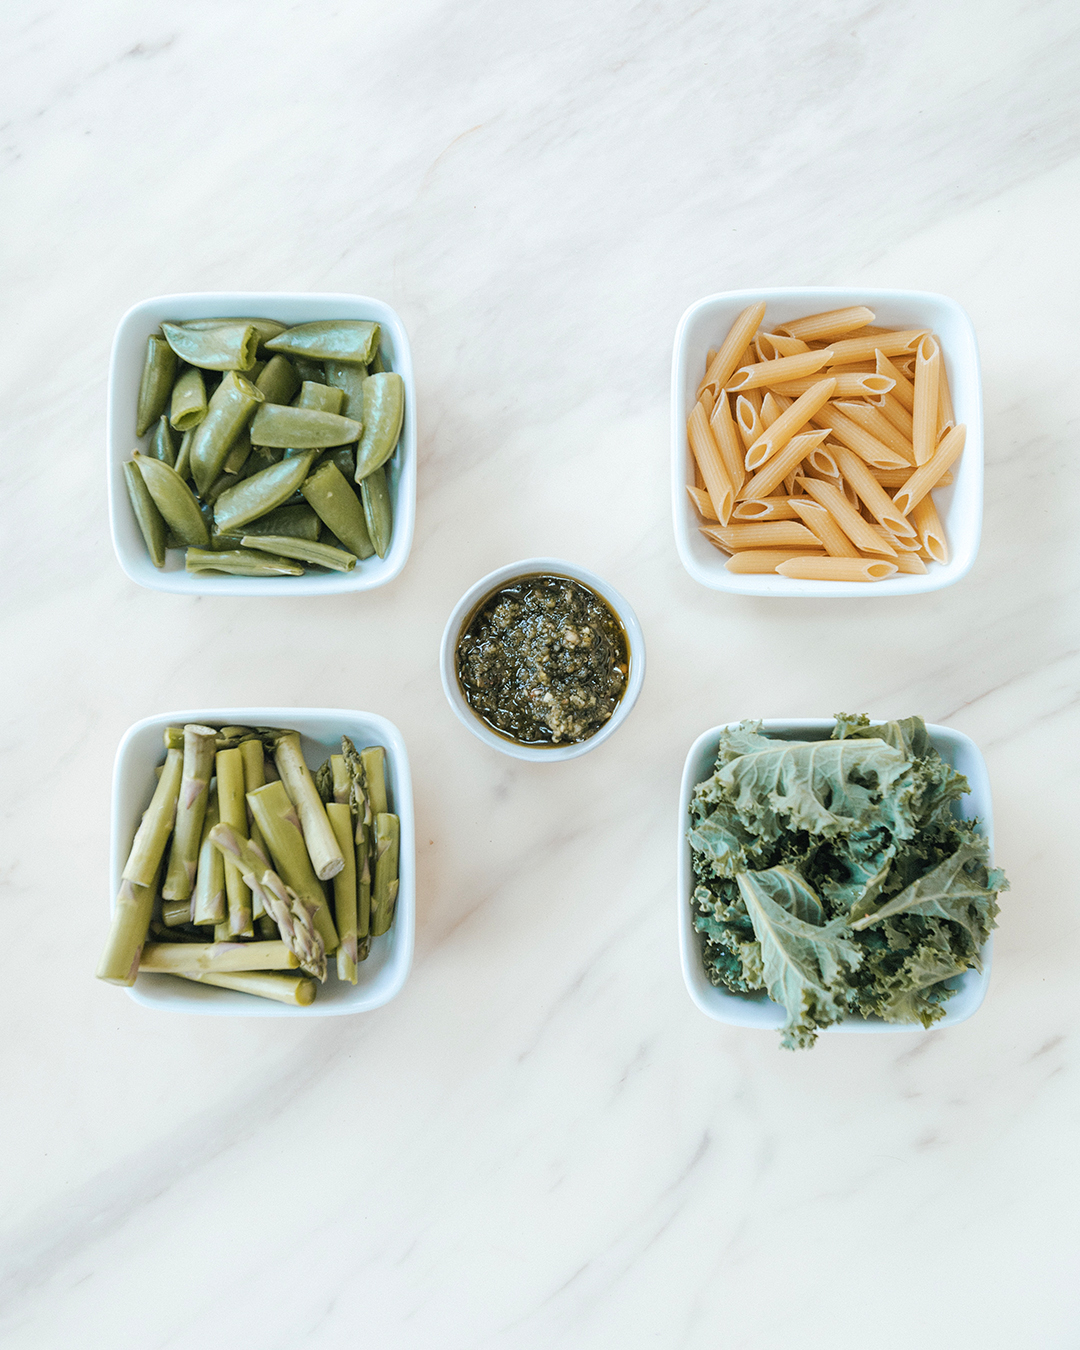 The-Oily-Home-Companion-Recipe-Pesto-penne-gluten-free-gf-pasta-spring-vegetables-asparagus-kale-garlic-basil-lemon-vitality-essential-oil-pesto-Summer-Spring-Dish-Meal-Ingredients.jpg